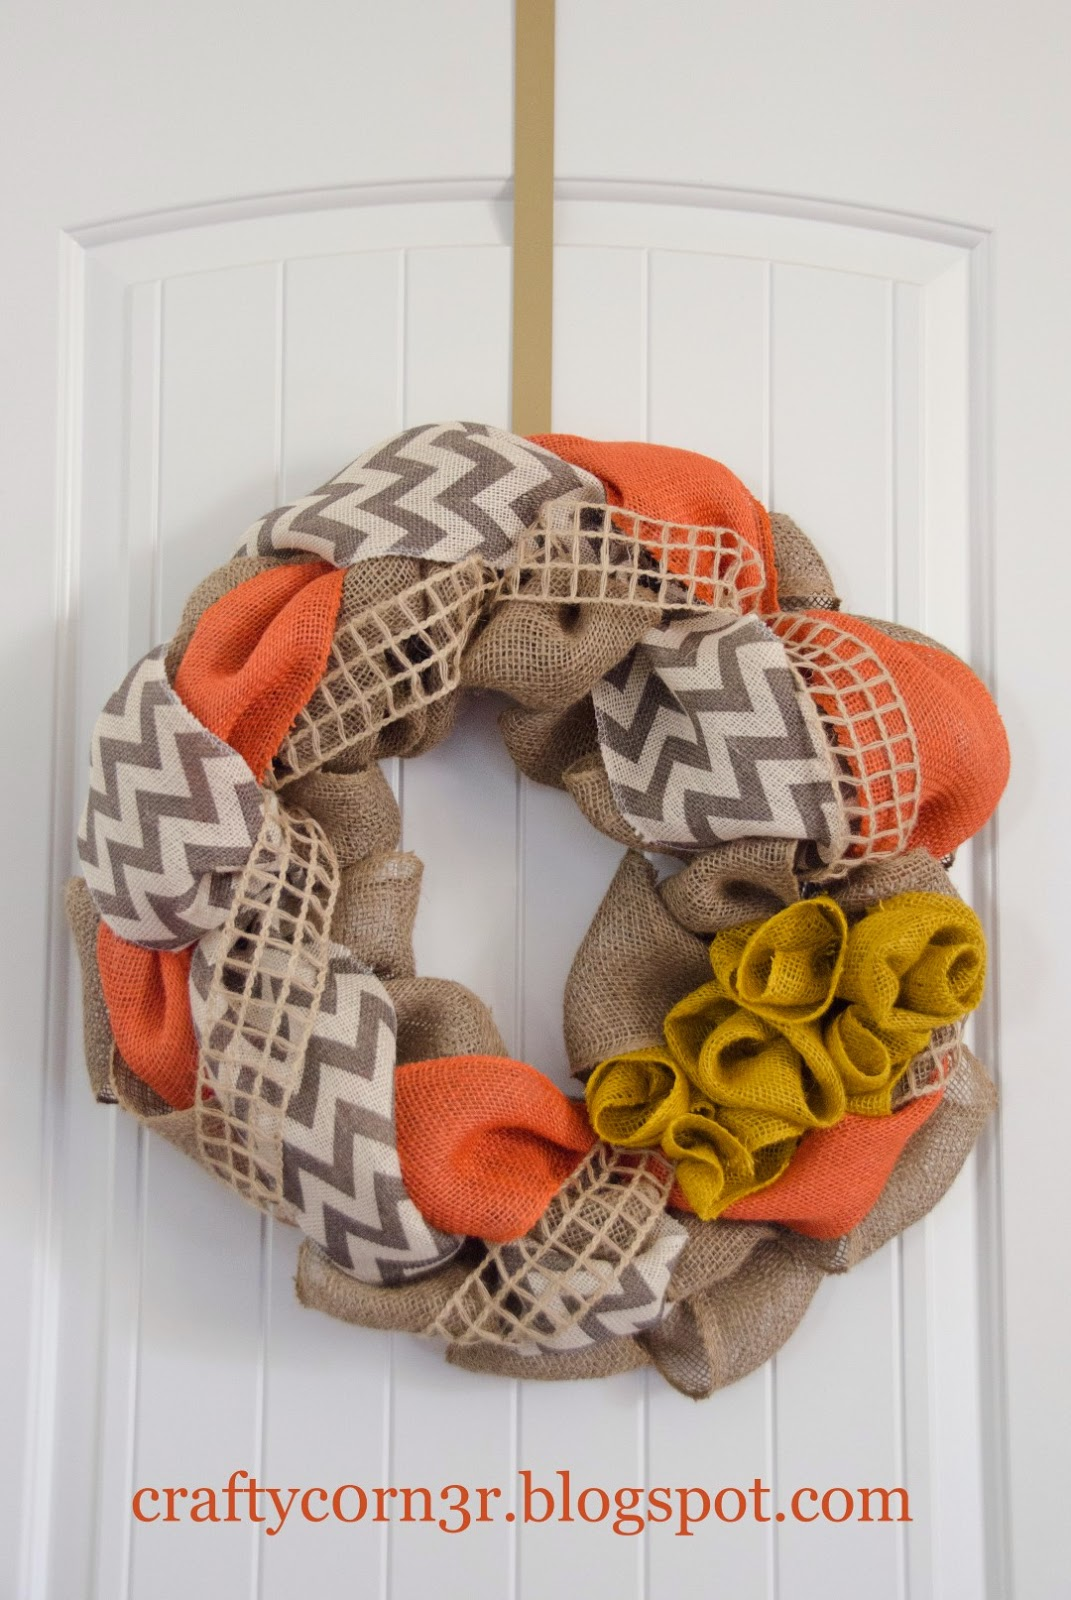 http://craftyc0rn3r.blogspot.com/2014/11/how-to-make-burlap-wreath.html